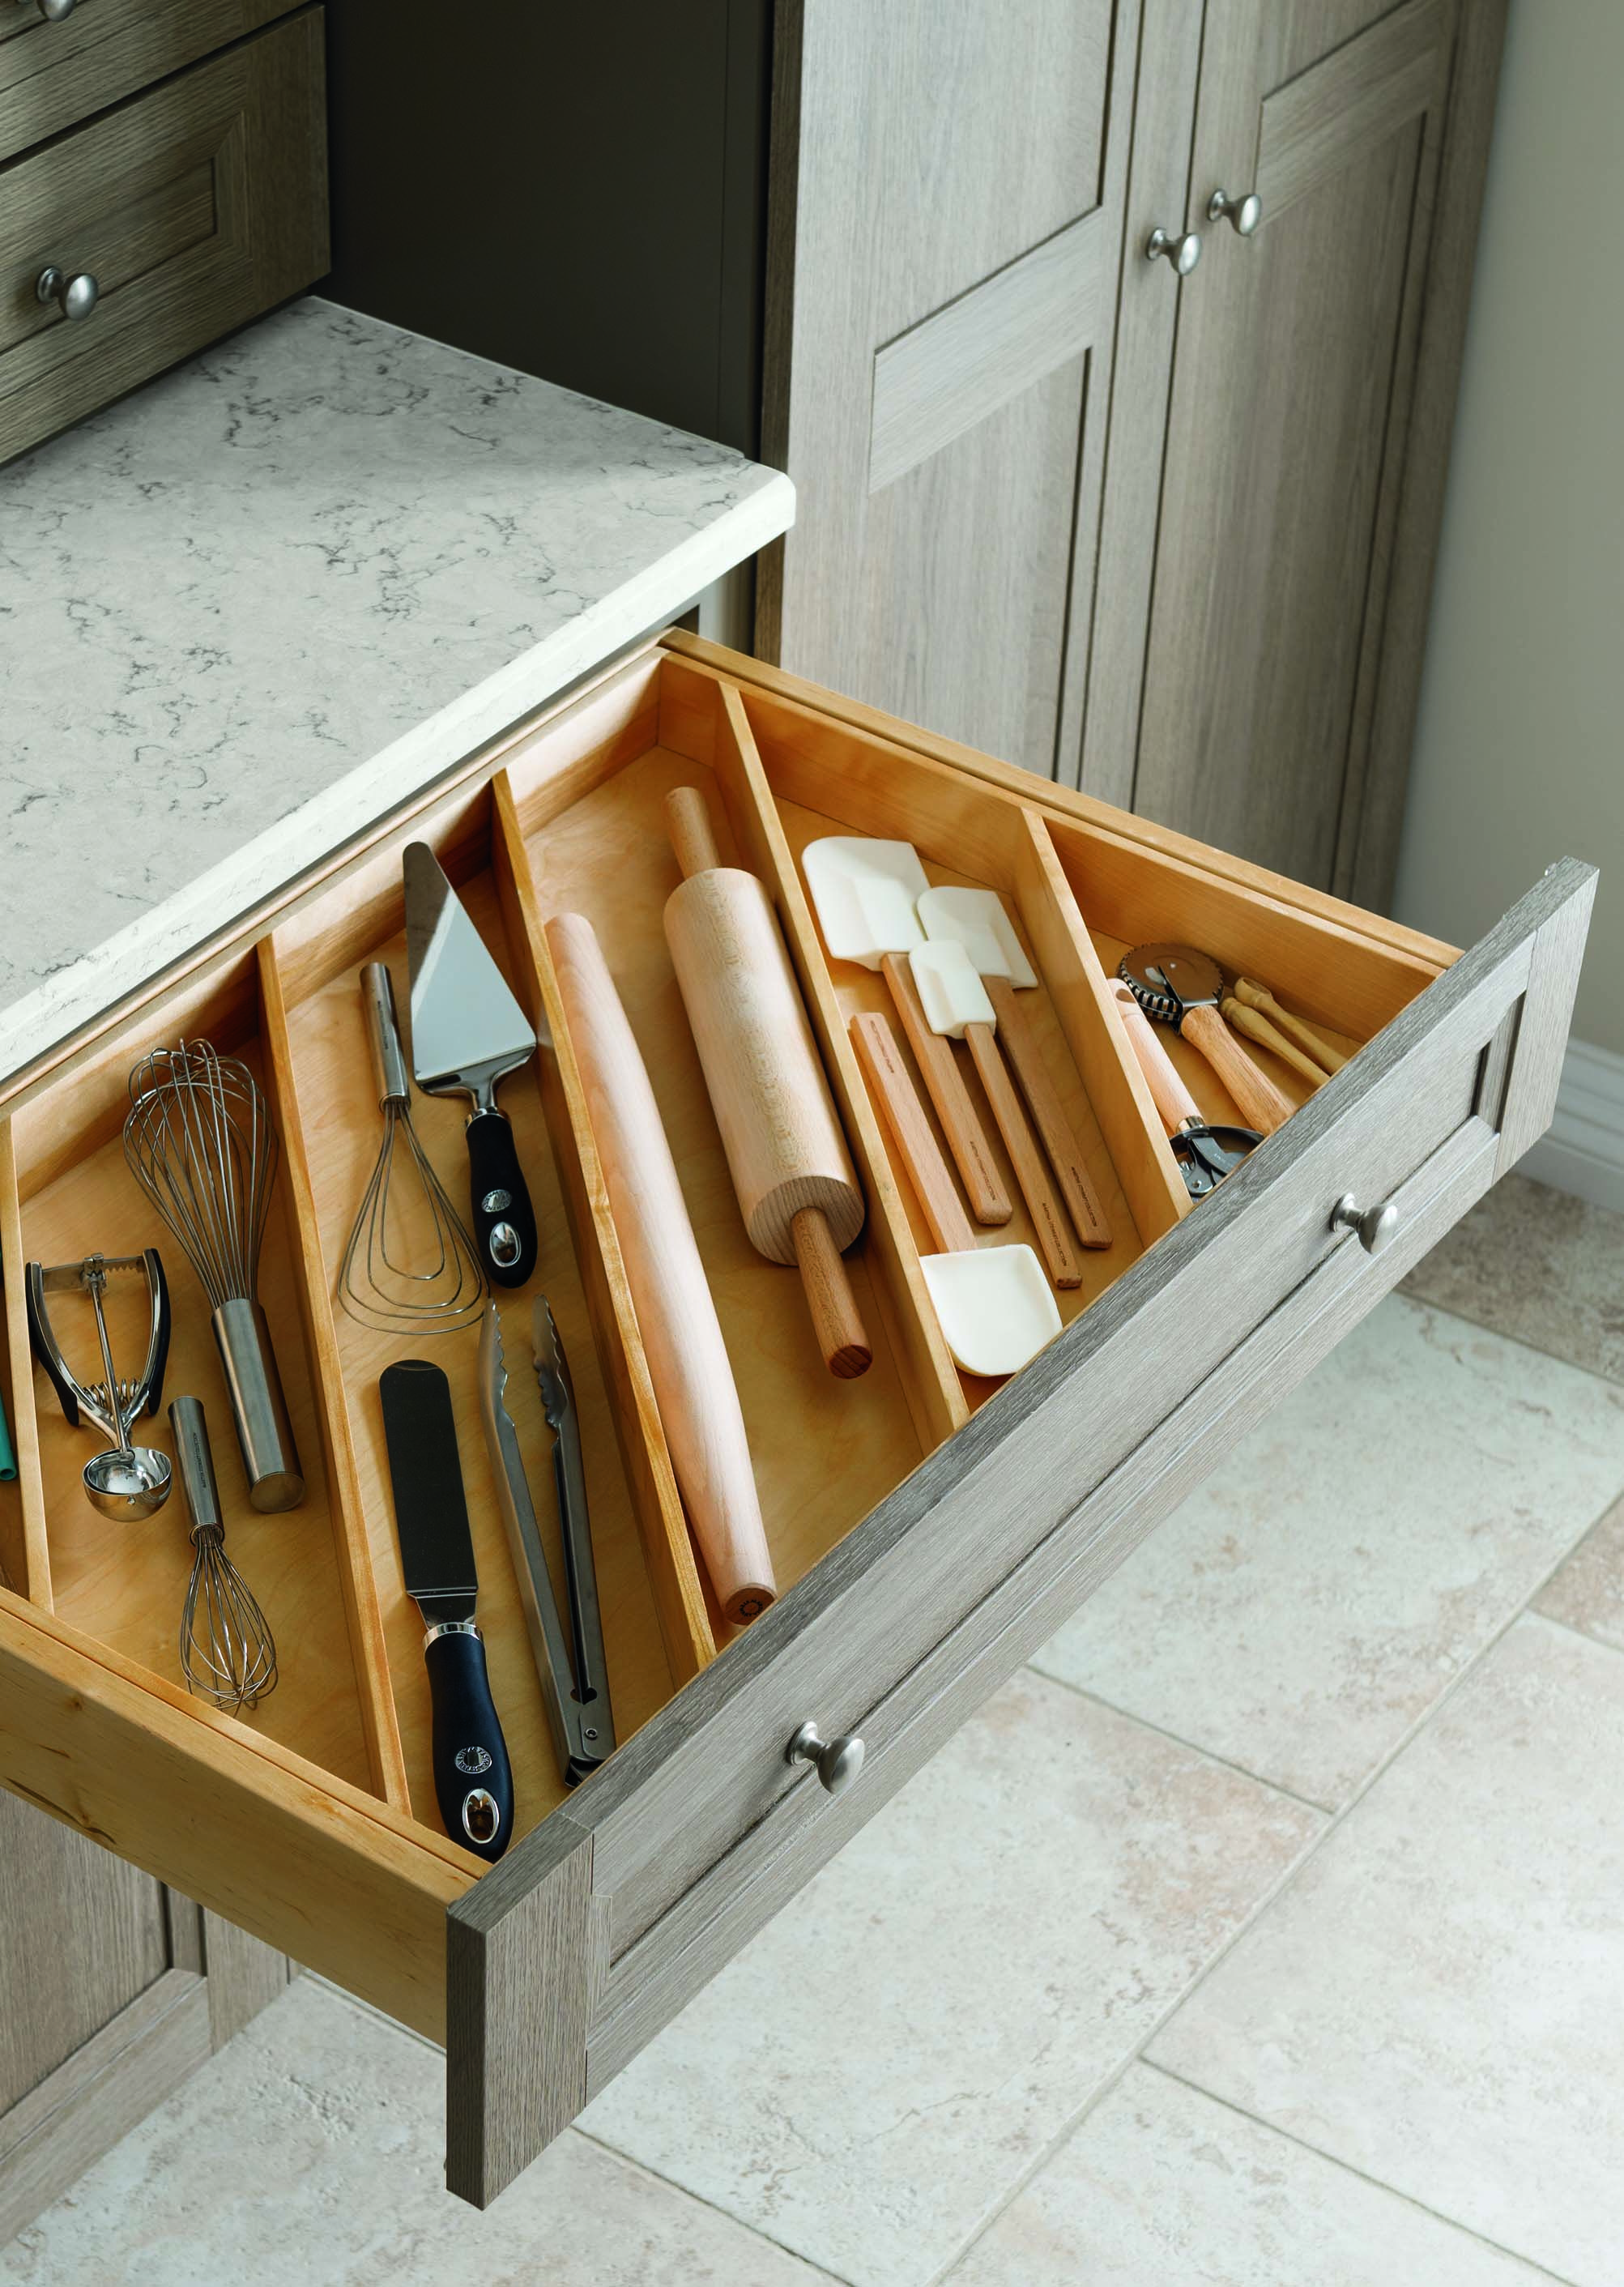 Say Goodbye To Tangled Kitchen Gadgets With #MarthaStewartLiving Drawers  Designed To Store Utensils Of Any